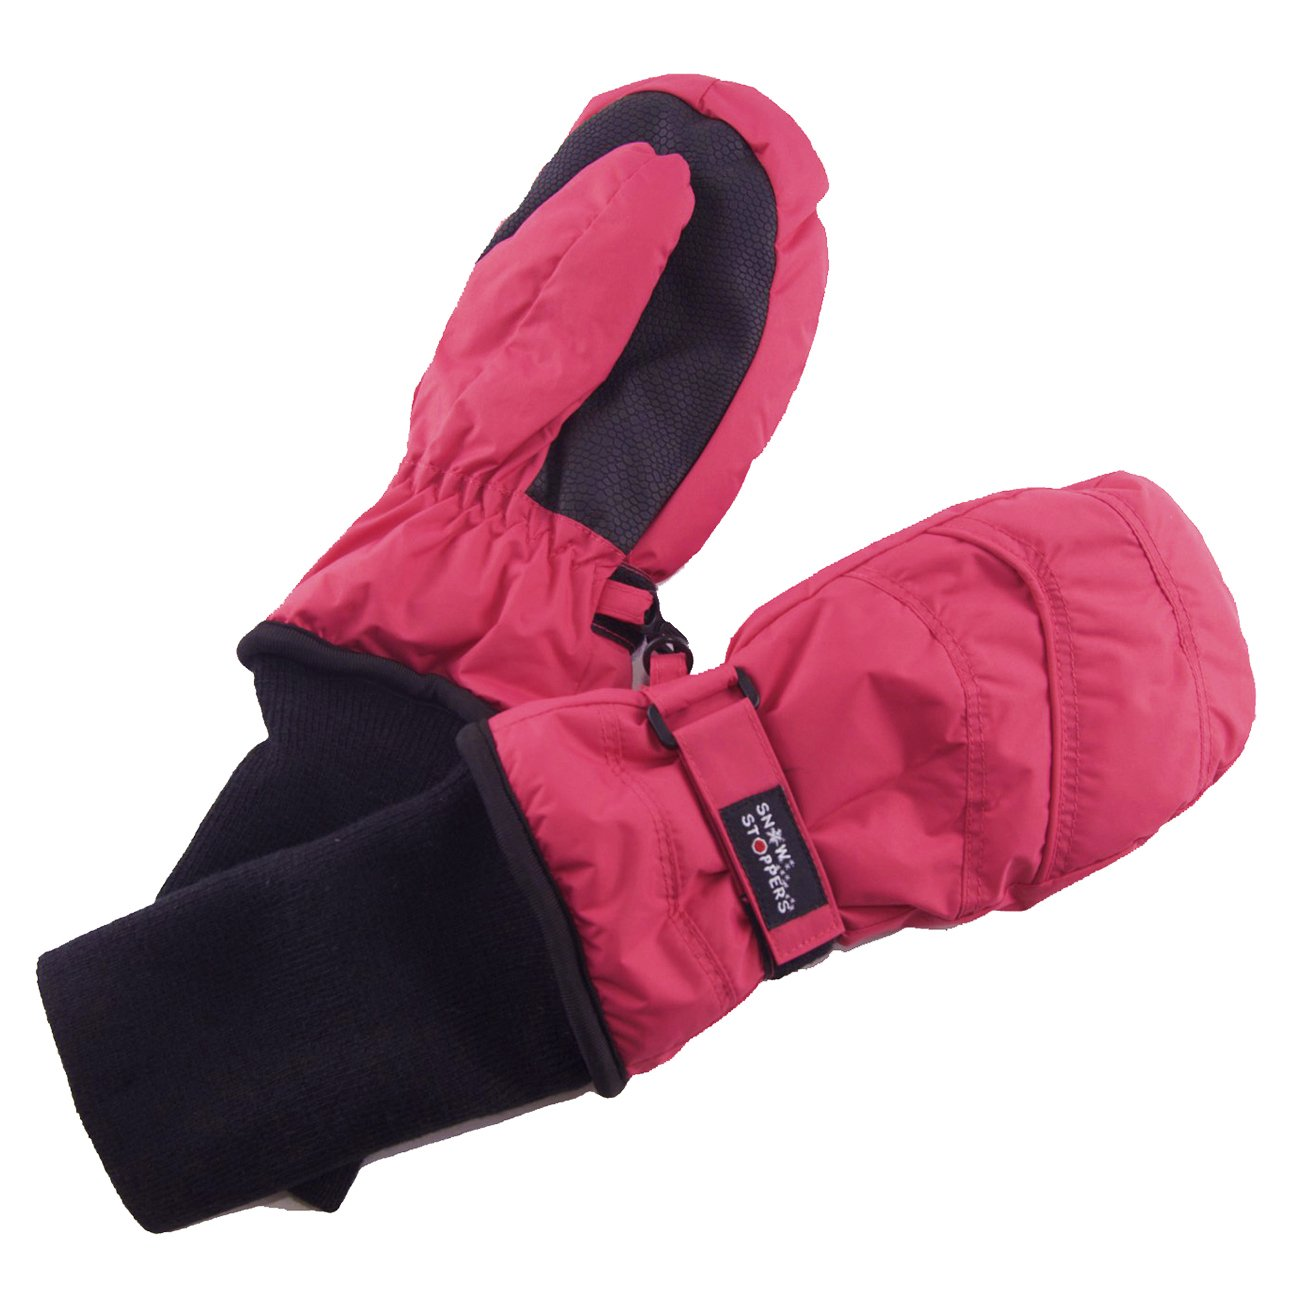 SnowStoppers Kid's Nylon Waterproof Snow Colorful Mittens (Fuchsia, Medium)